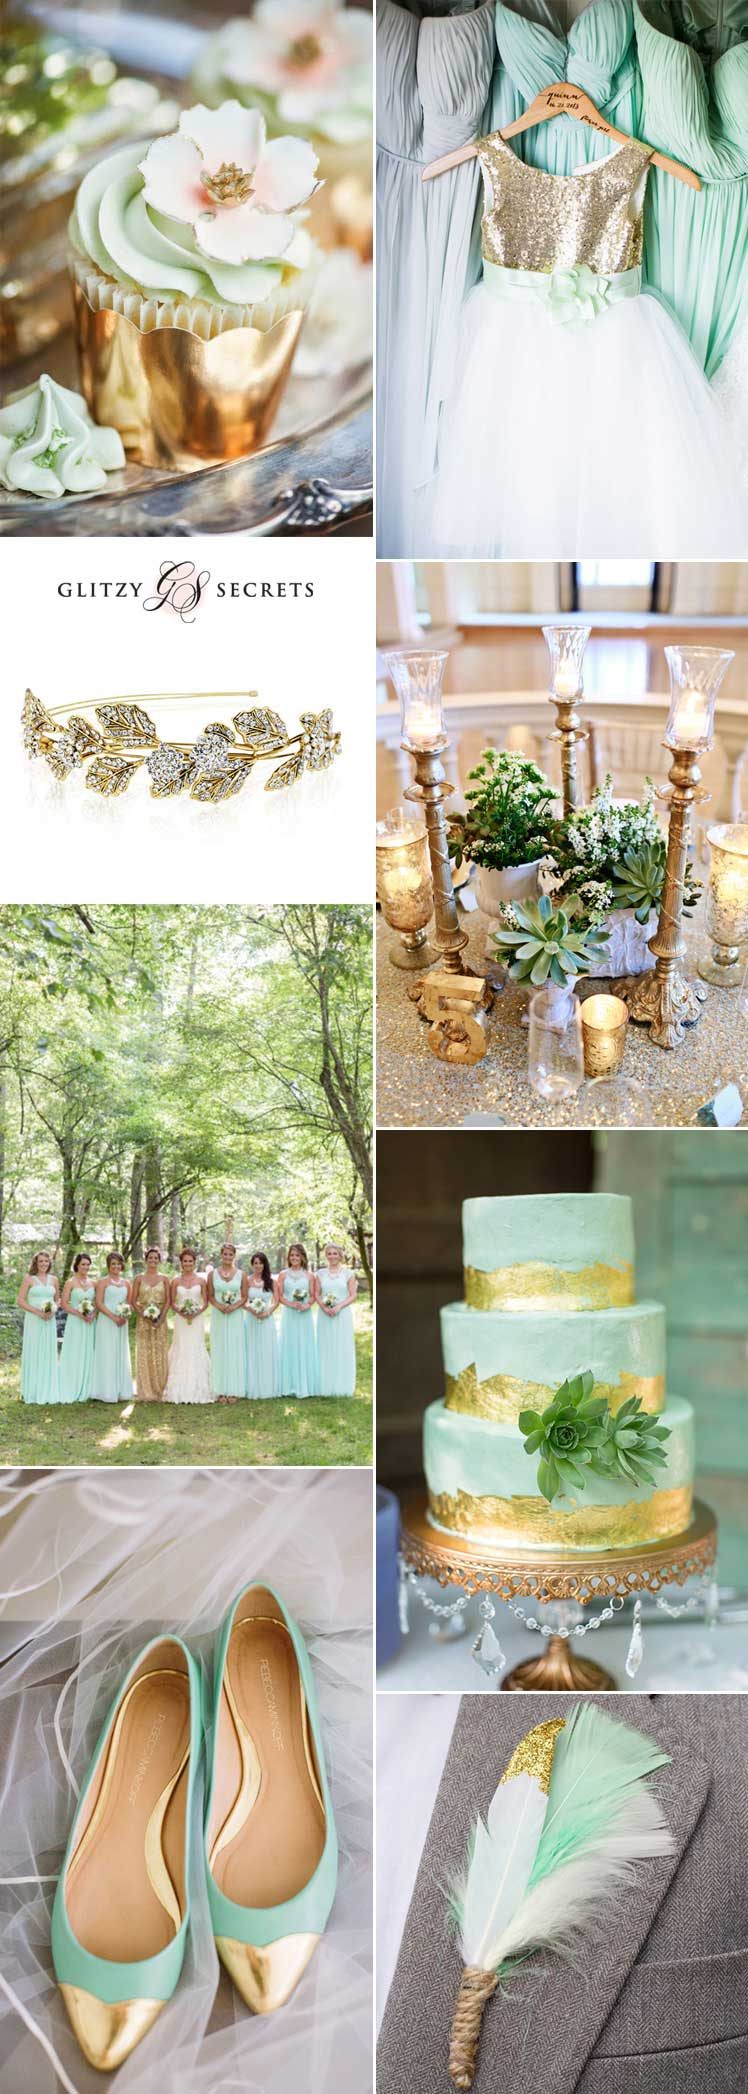 beautiful mint and gold wedding inspiration